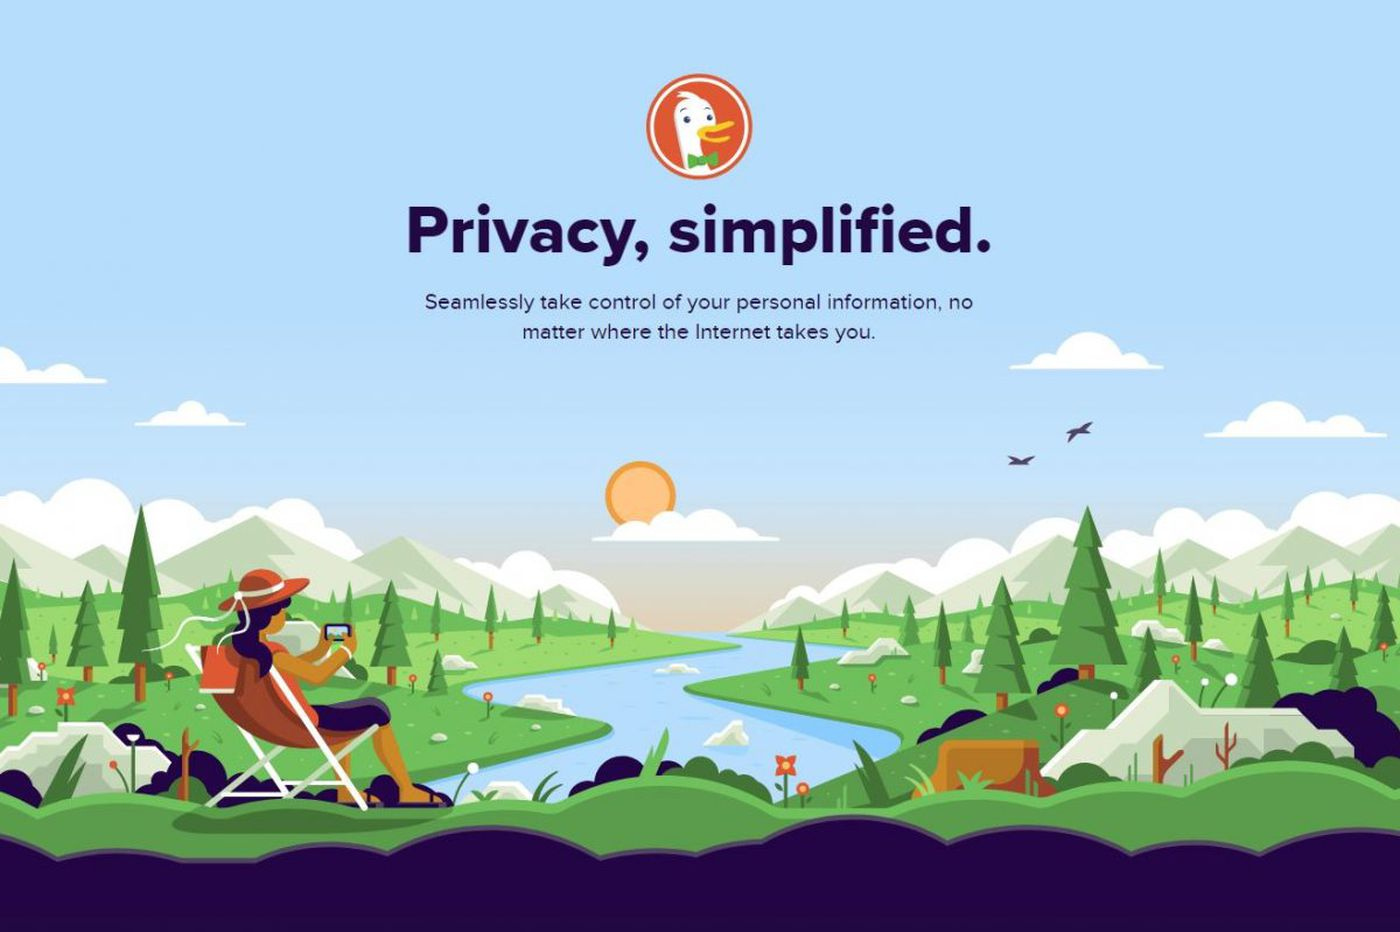 Paoli's DuckDuckGo search firm ramps up privacy tools and search speeds for smartphone users